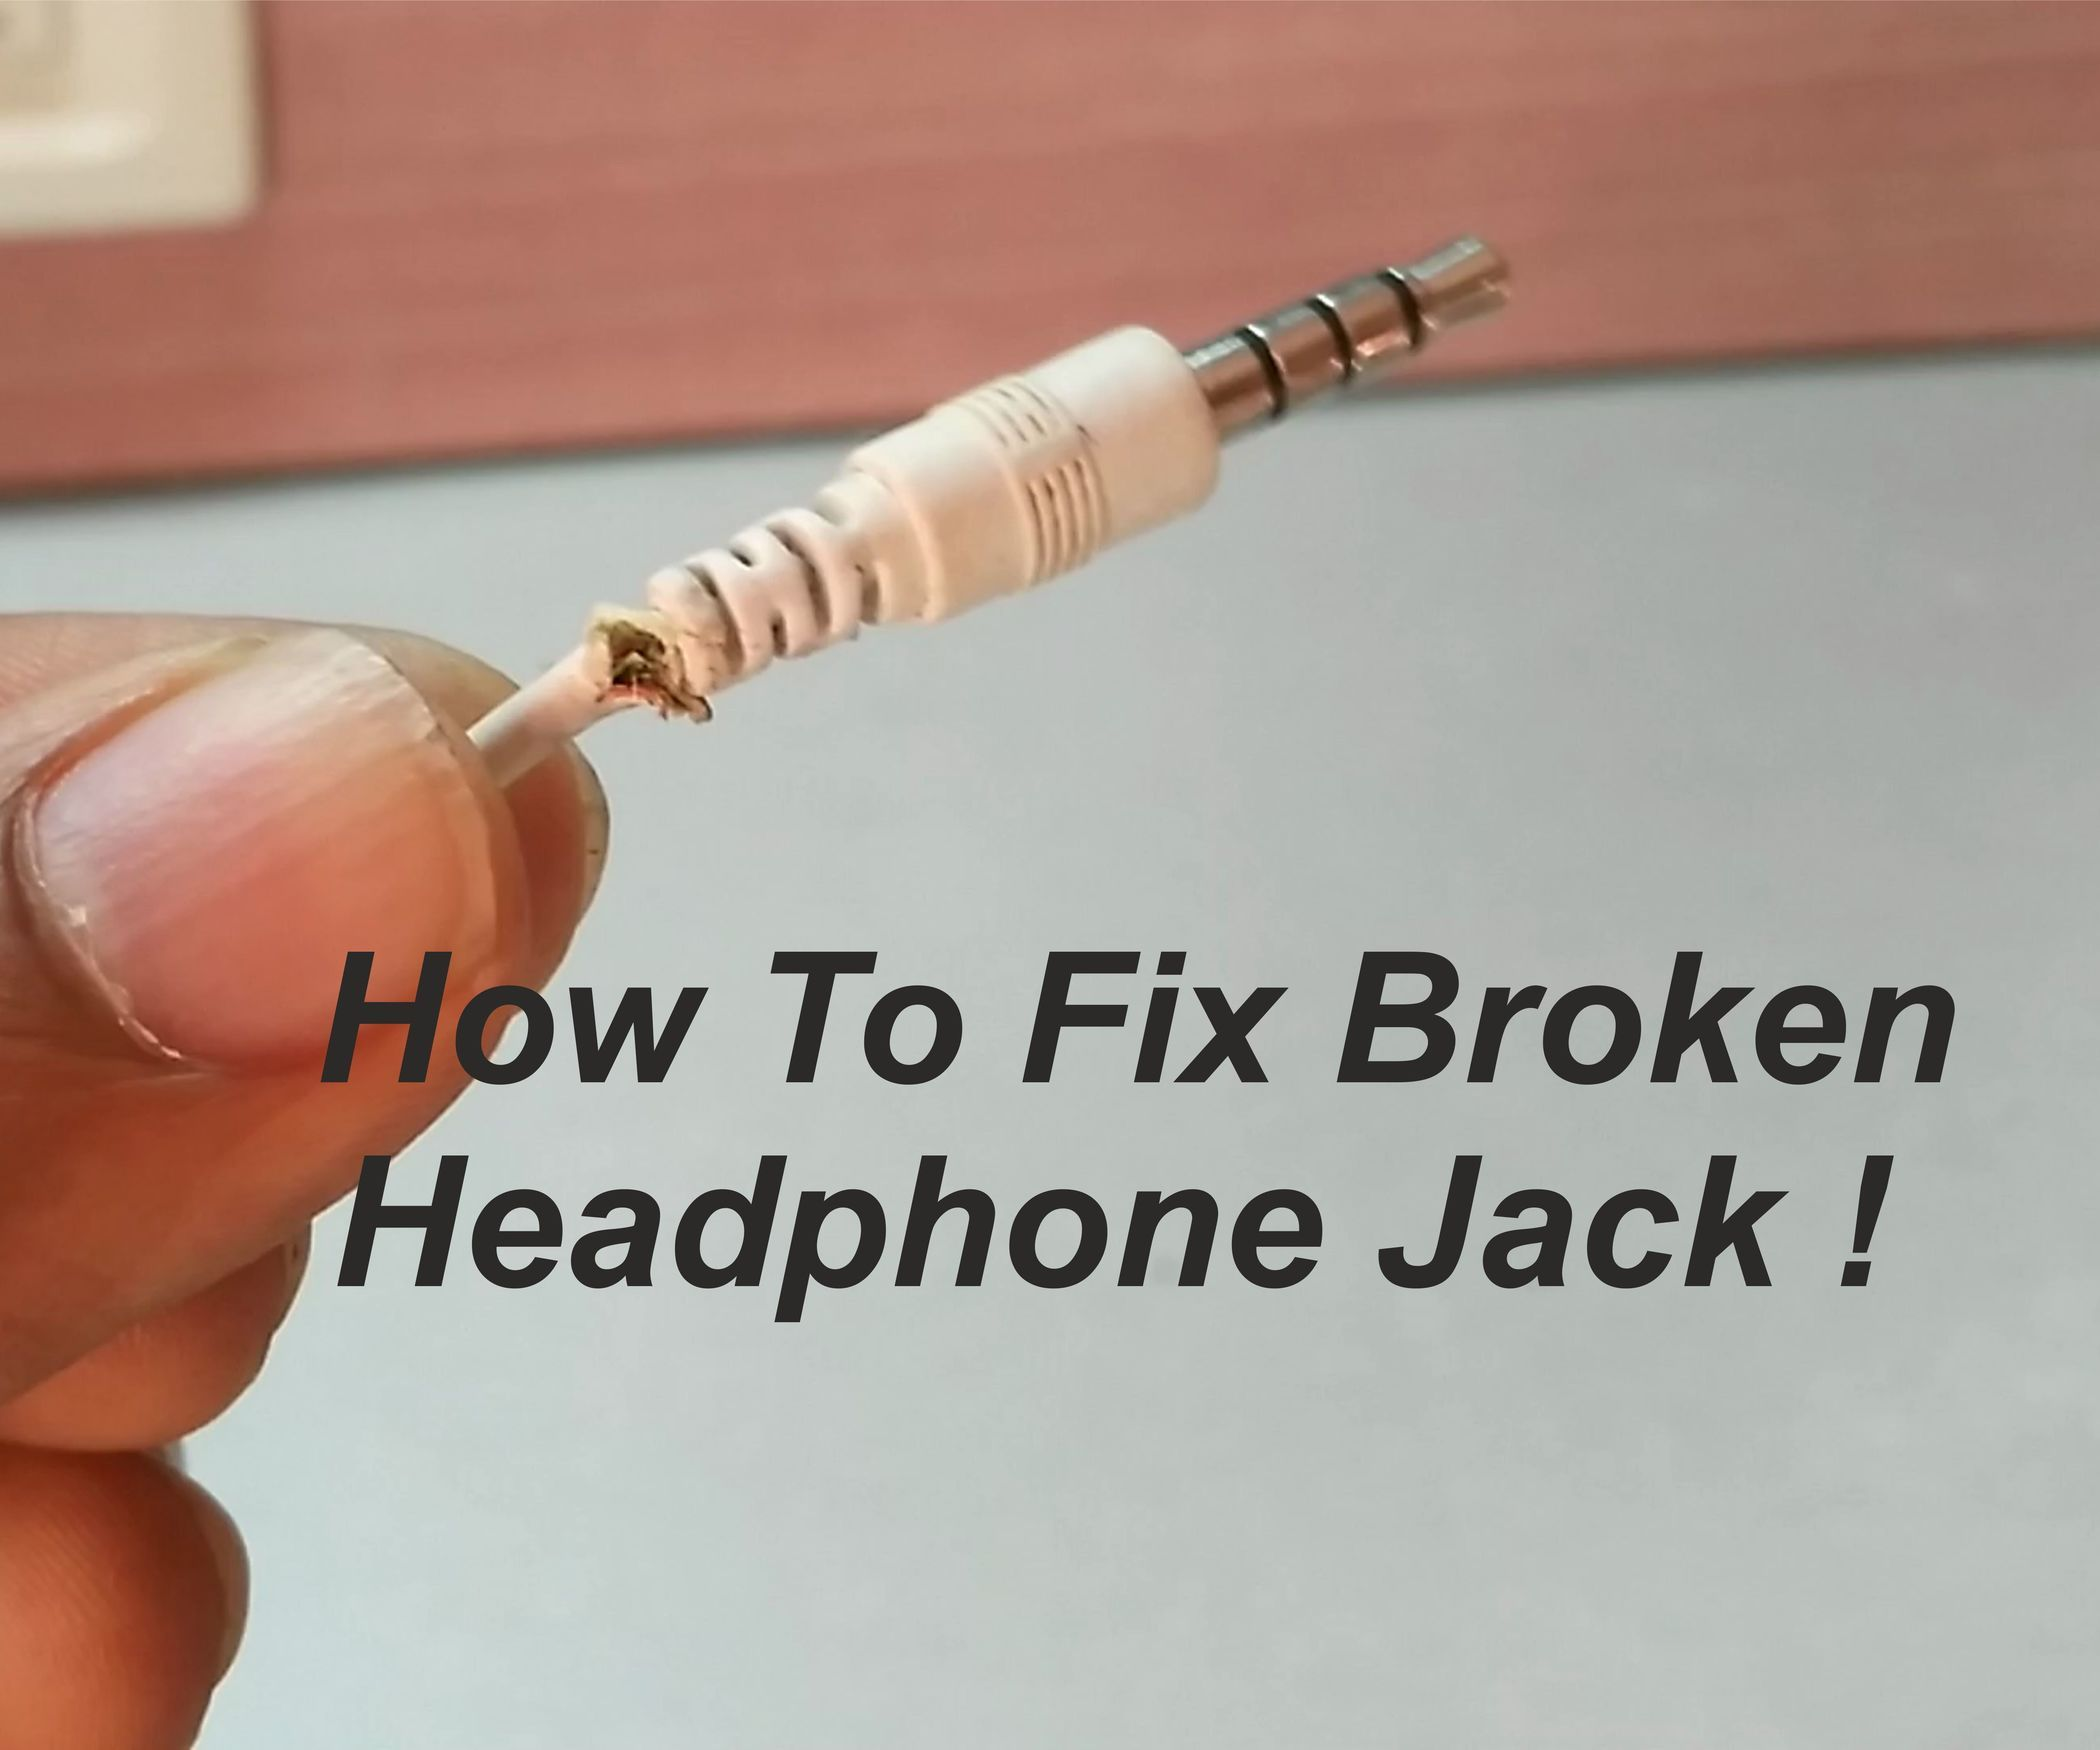 How to Fix Broken Headphone Jack ! | Pinterest | Headphones